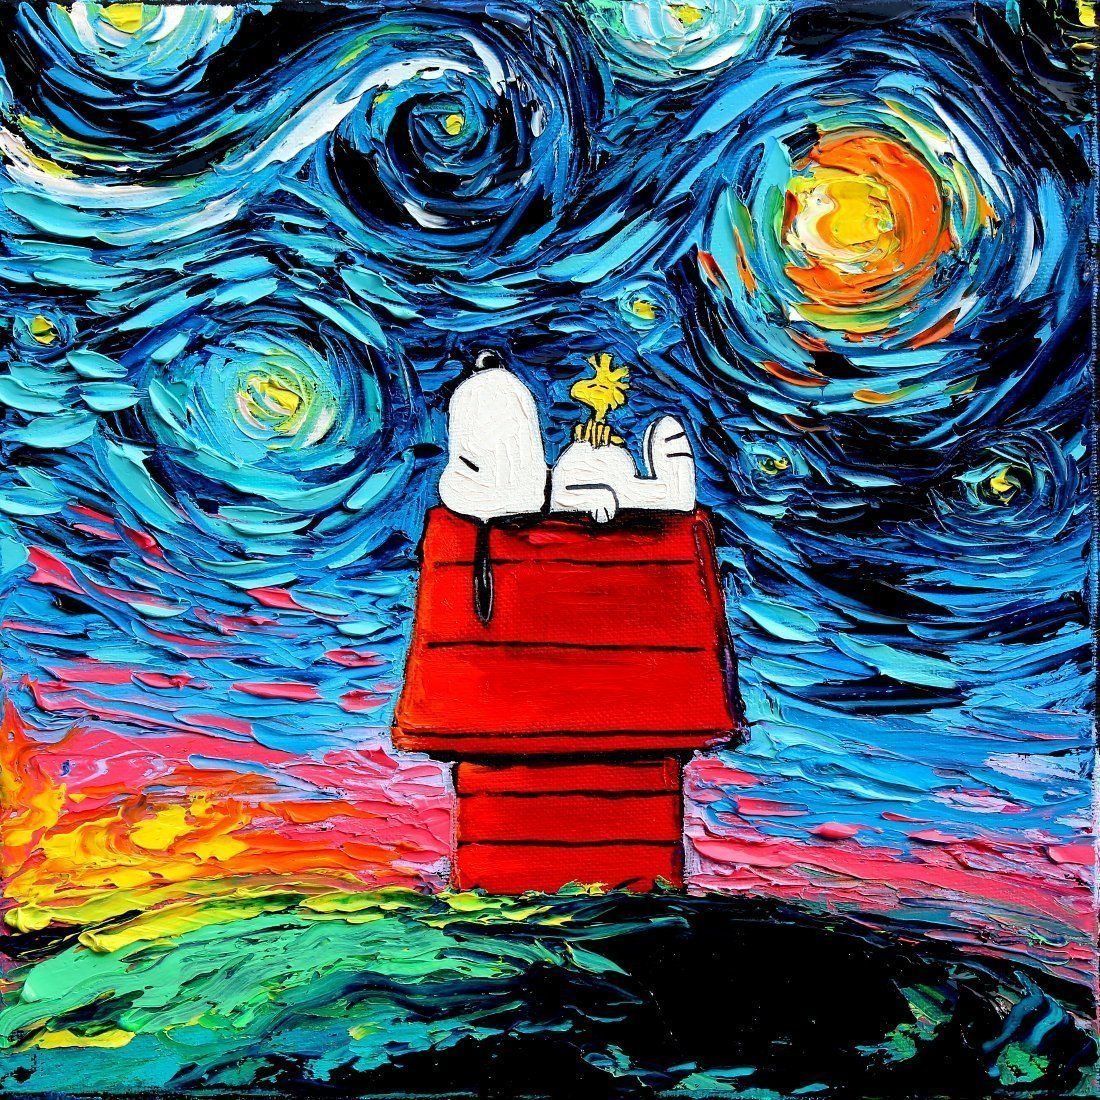 Snoopy inspired art canvas print van gogh never saw for Mural van gogh